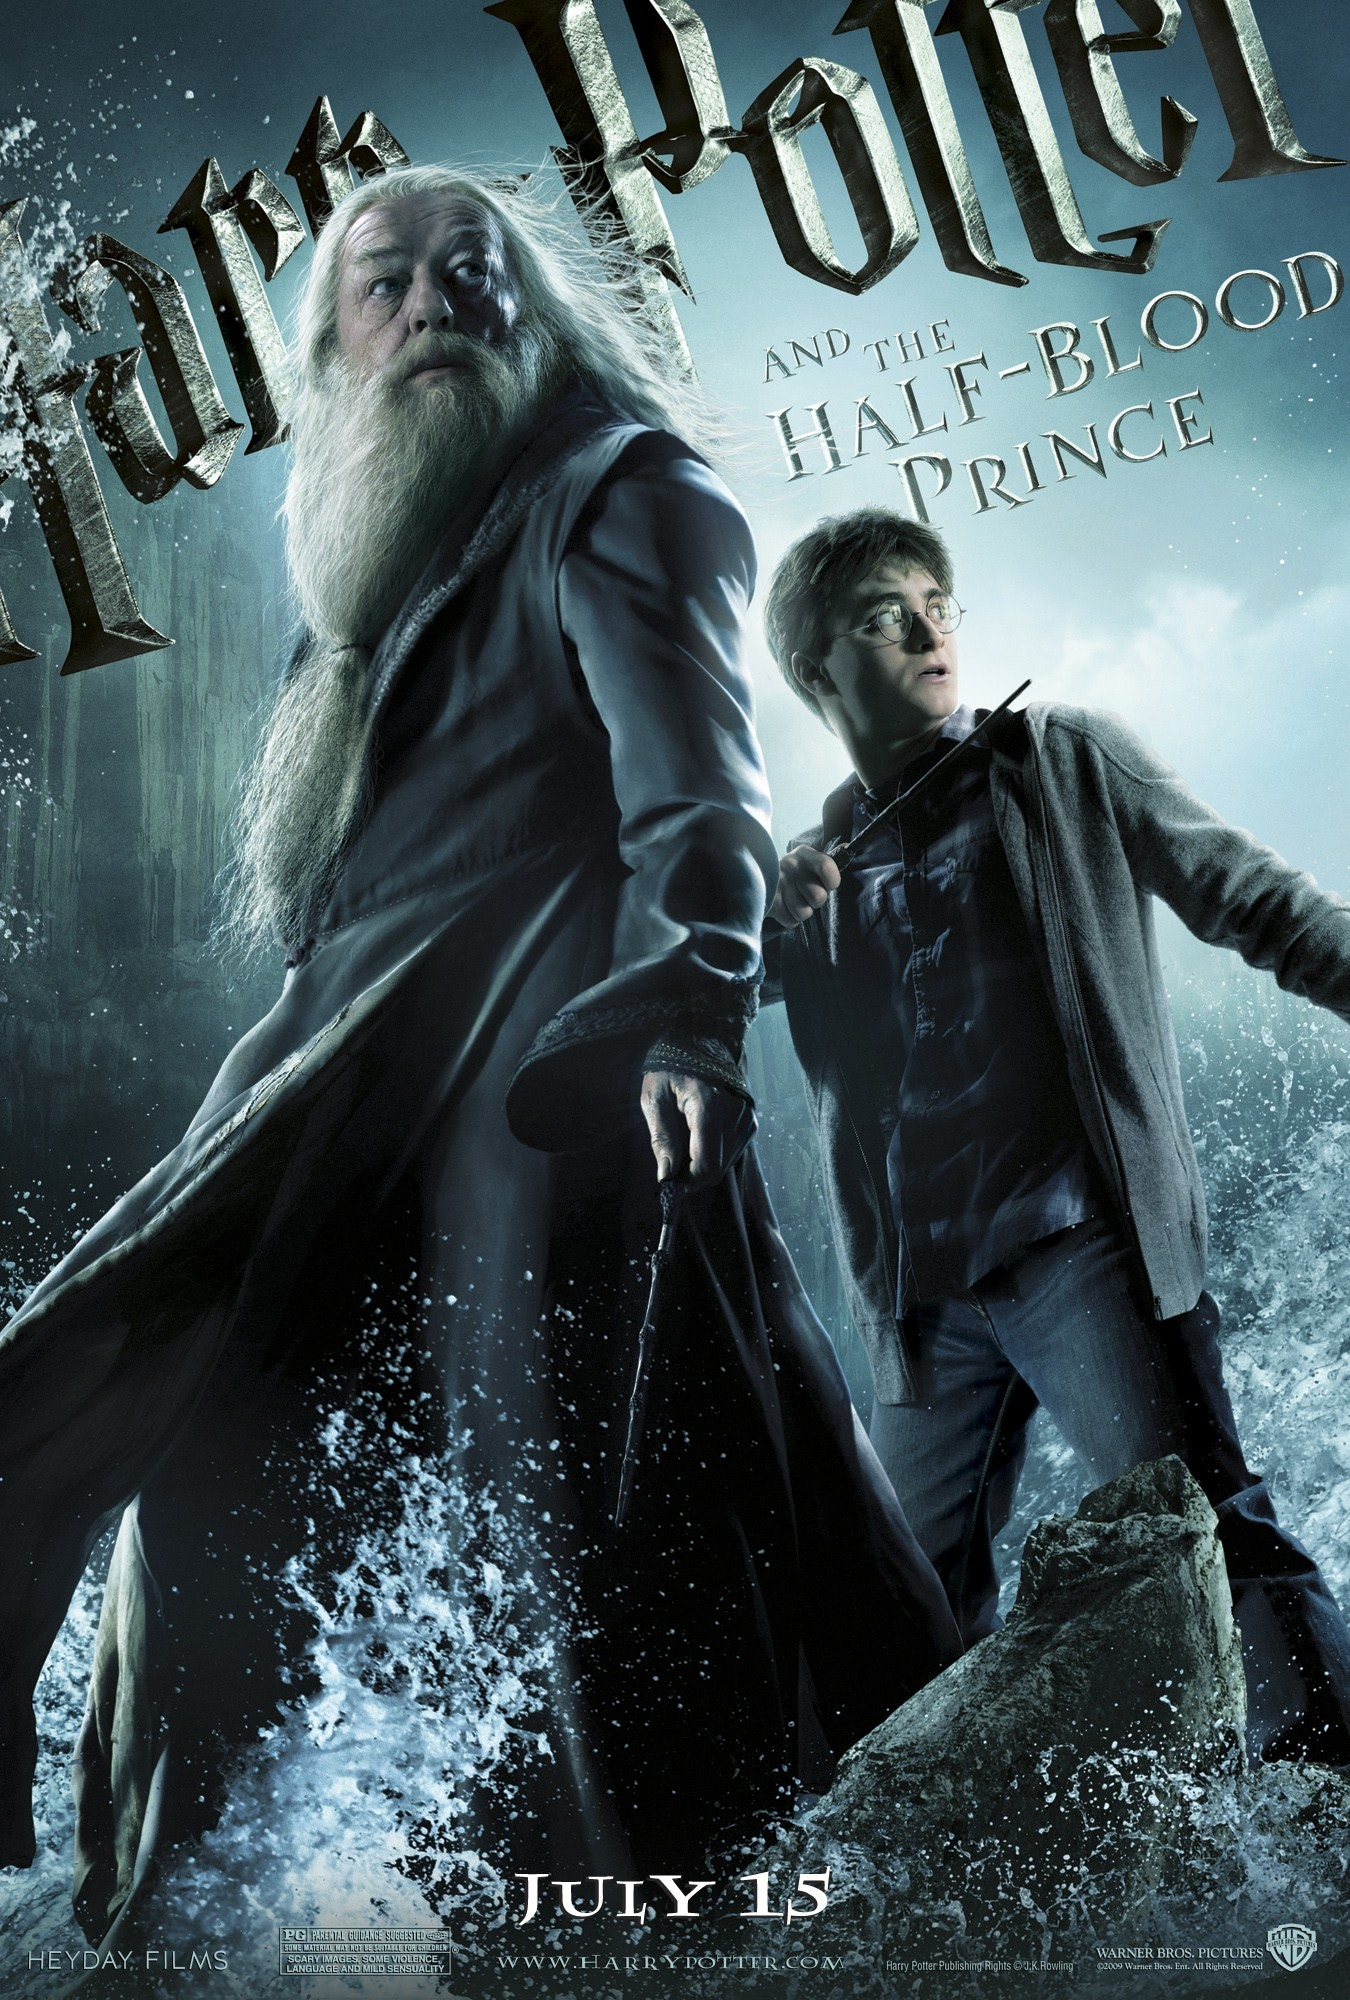 'Half-Blood Prince' Dumbledore & Harry poster